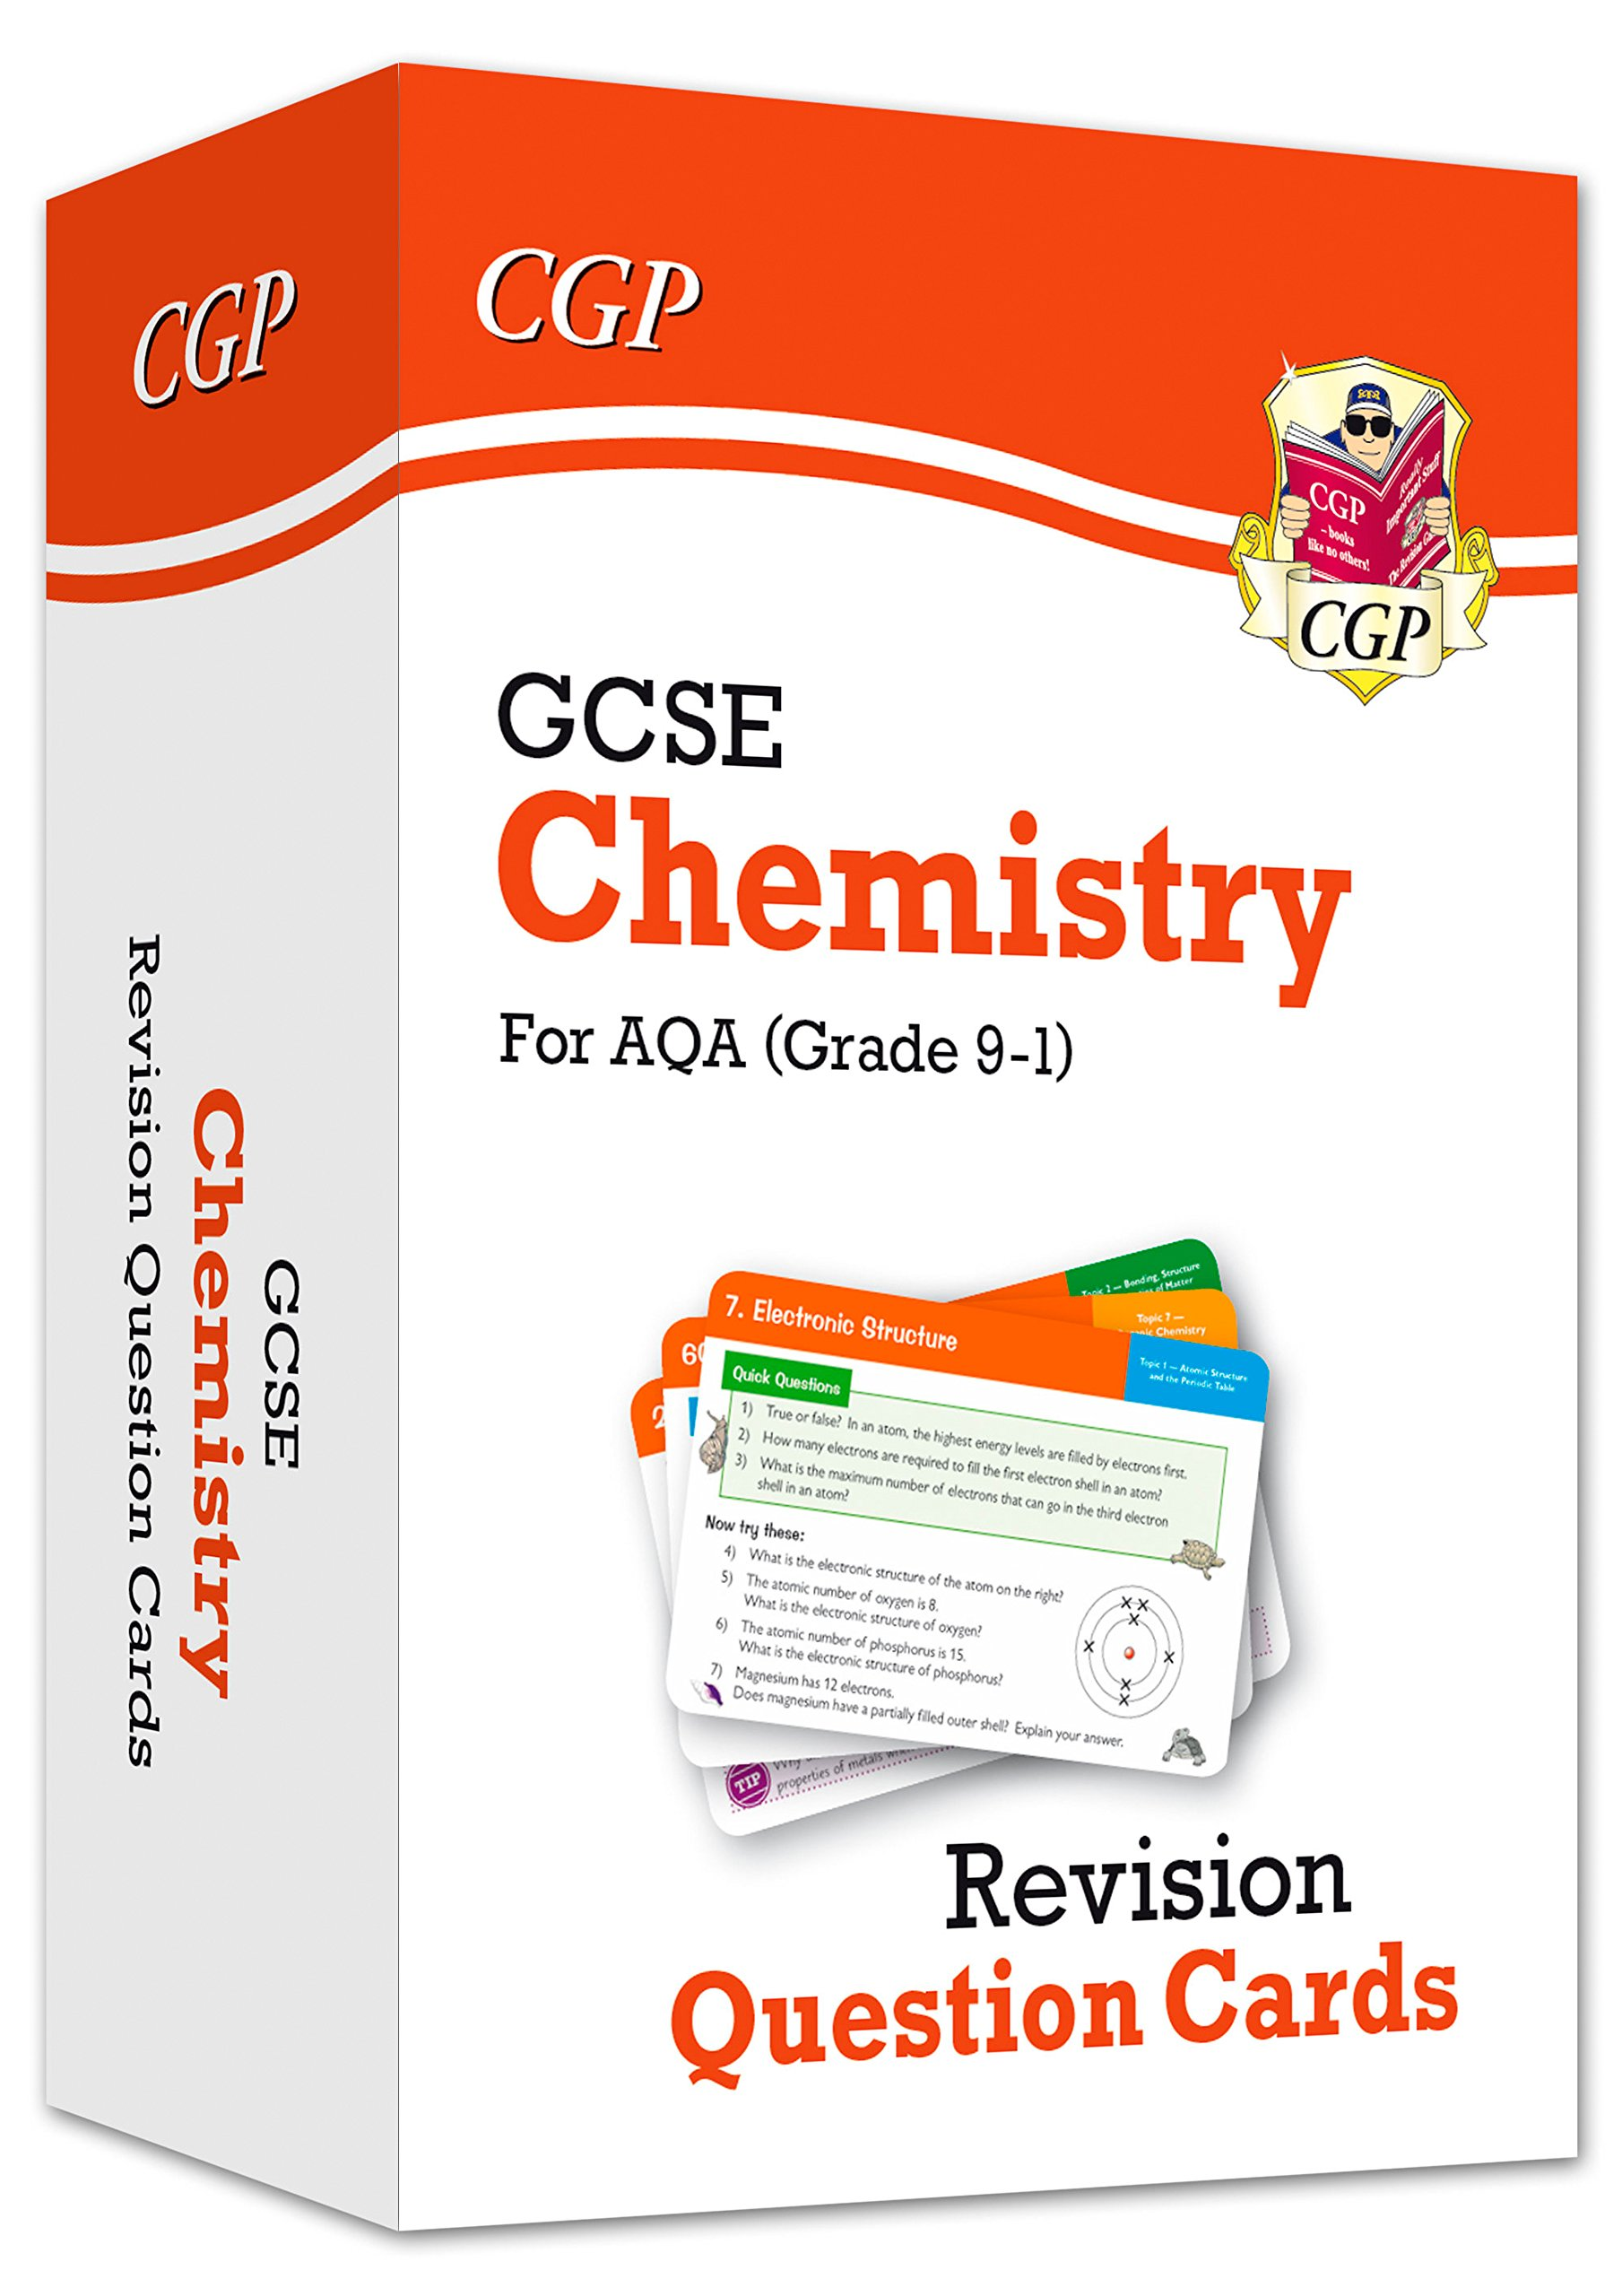 Remarkable New 9 1 Gcse Chemistry Aqa Revision Question Cards Cgp Gcse Wiring Cloud Grayisramohammedshrineorg